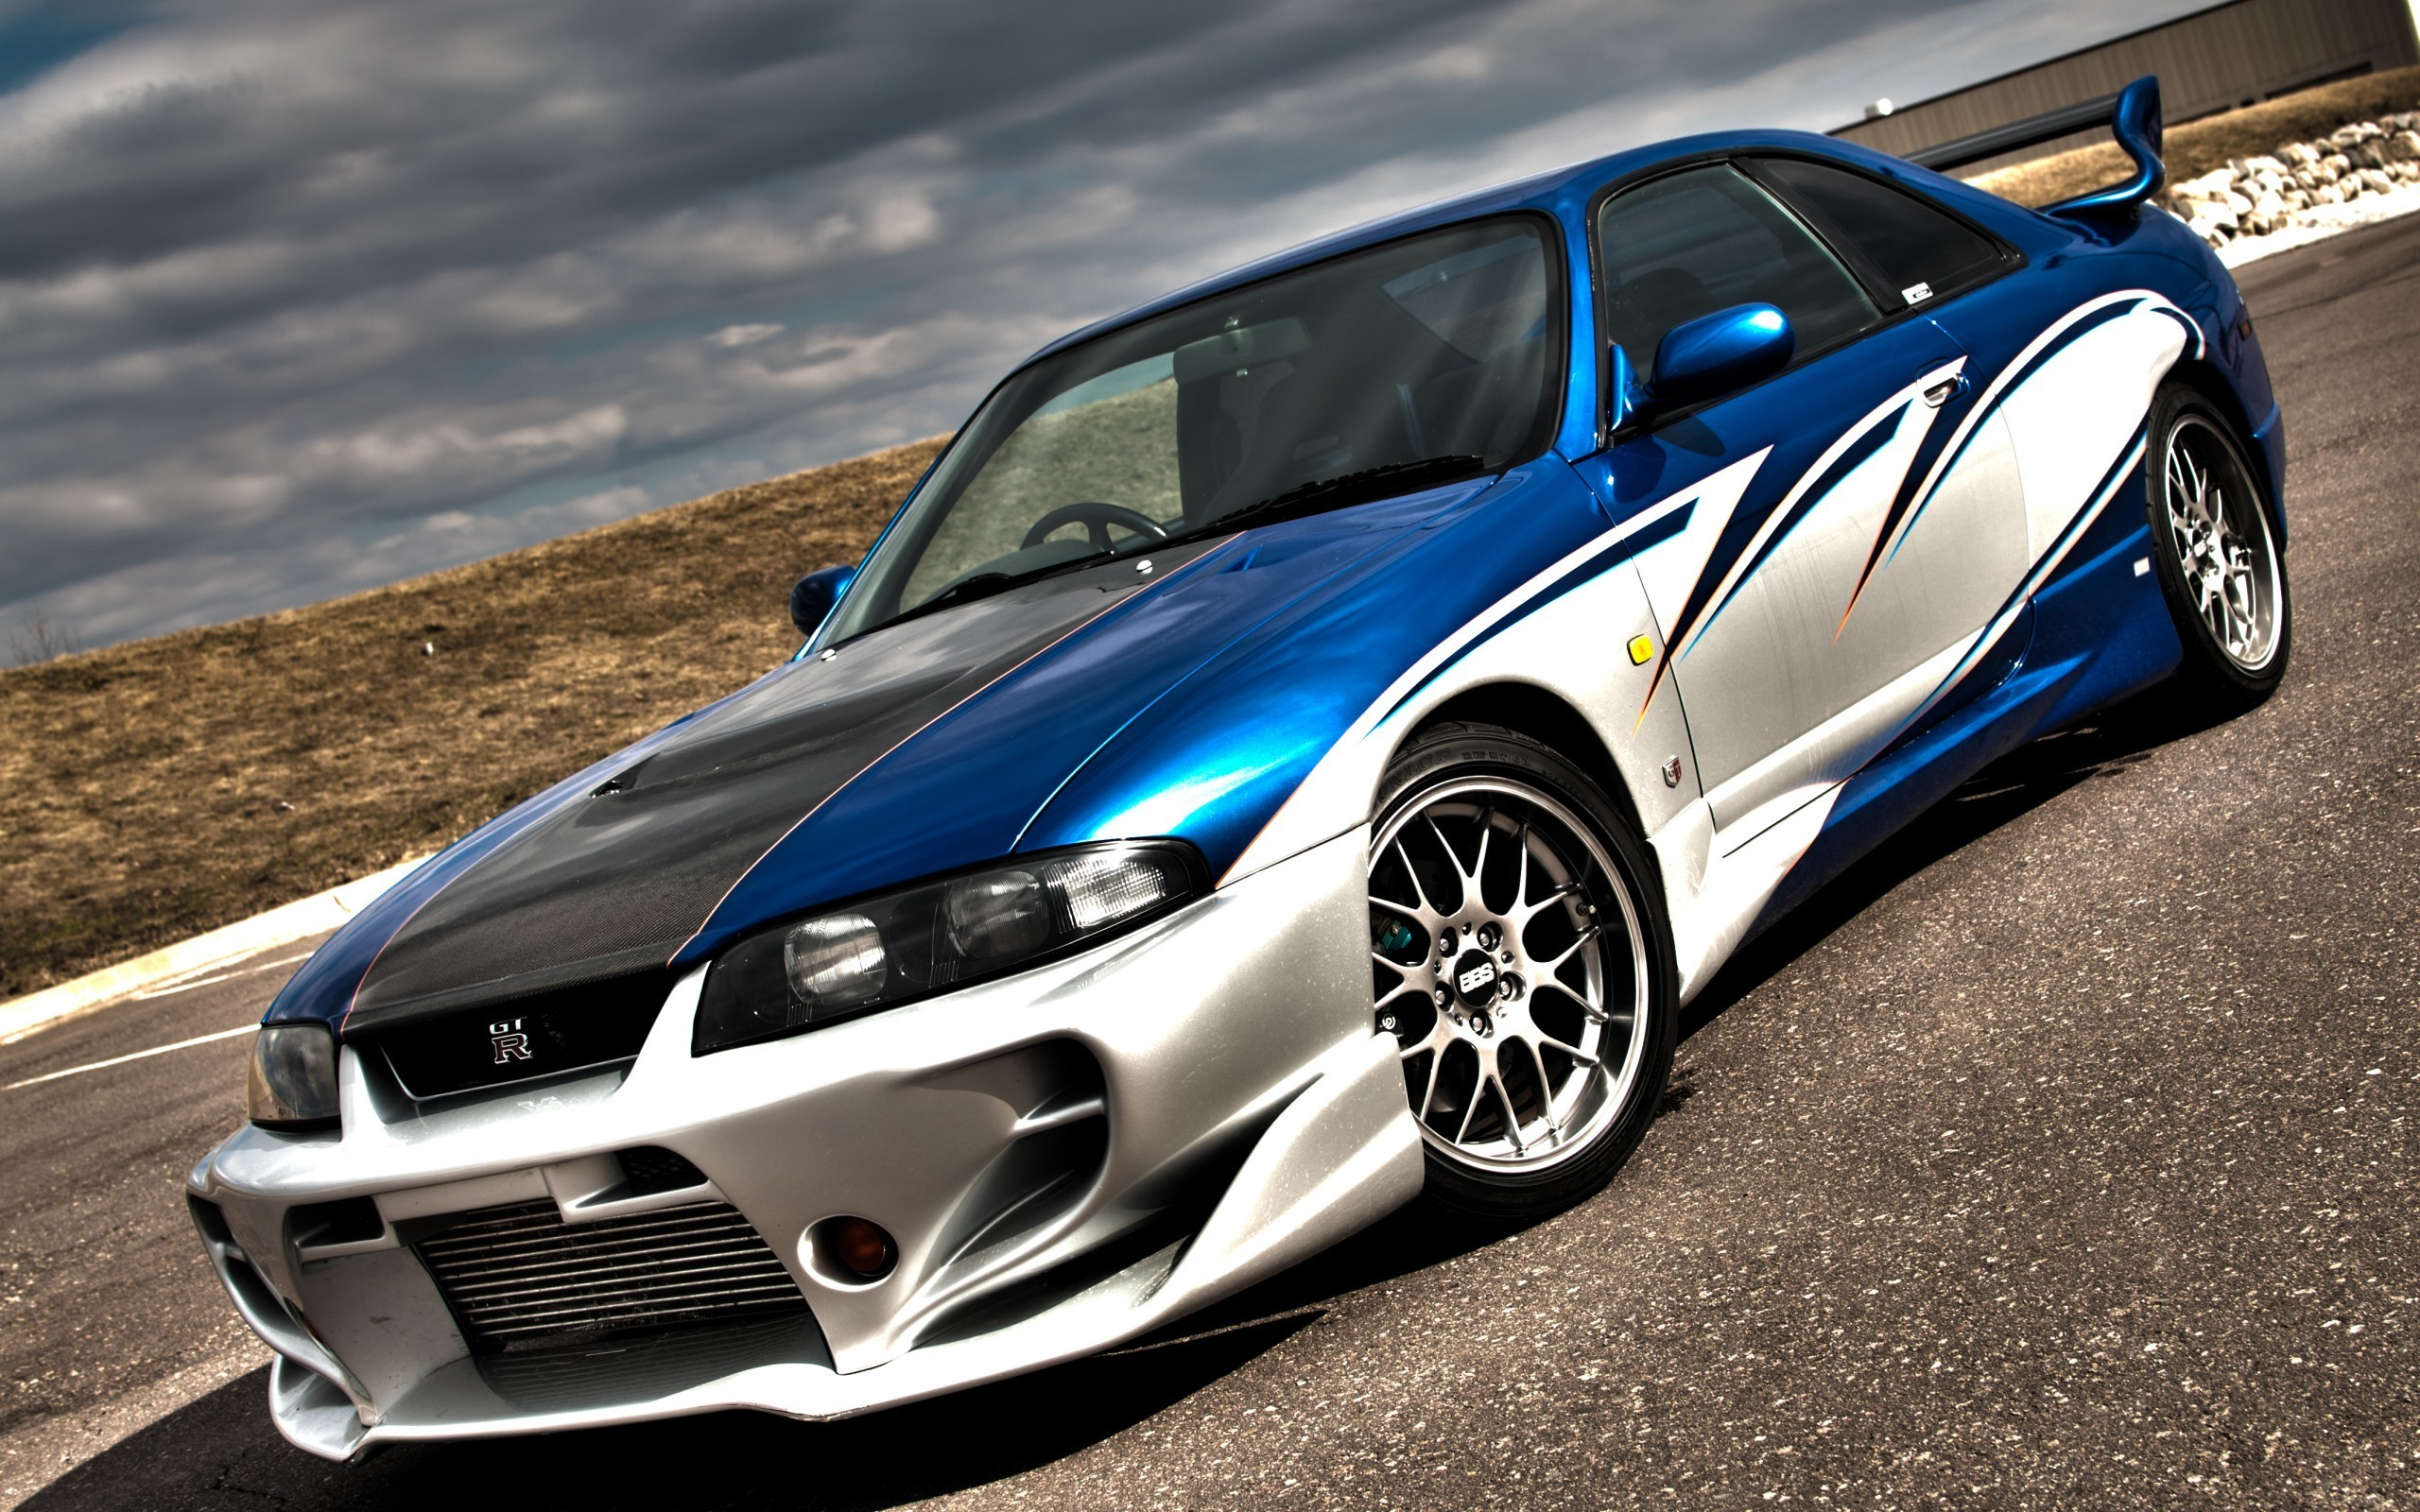 nissan skyline gtr r33 wallpaper ·①